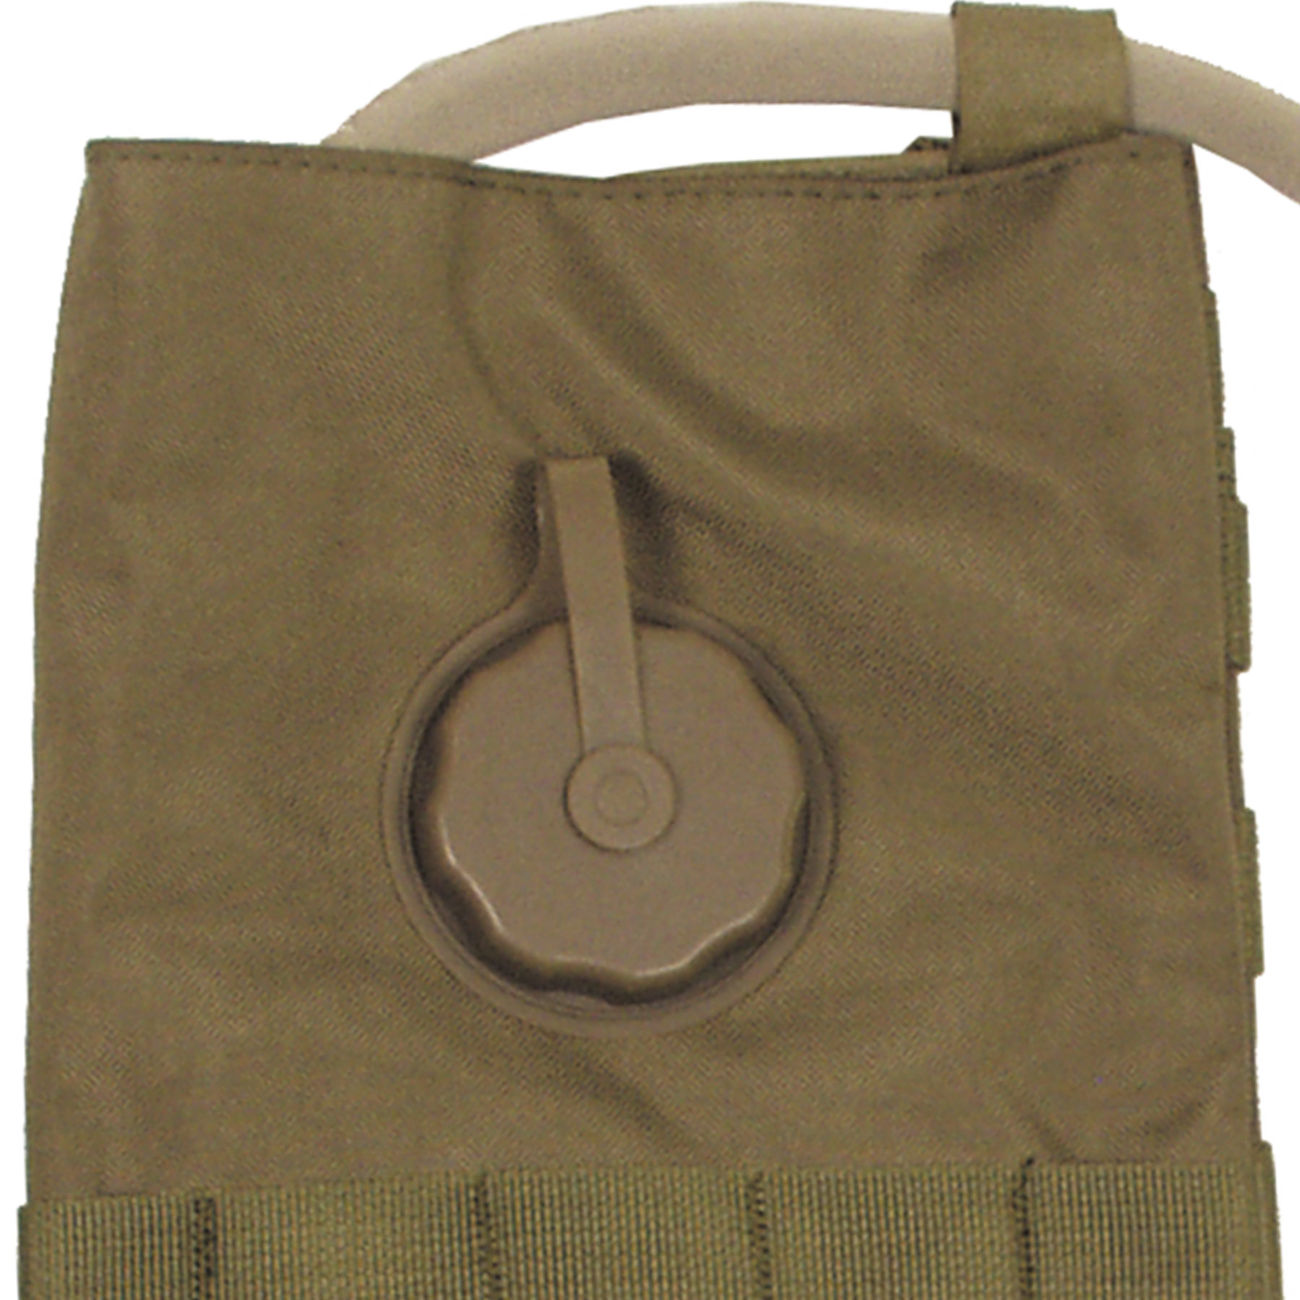 MFH Trinksystem MOLLE 2,5 Liter, coyote 2